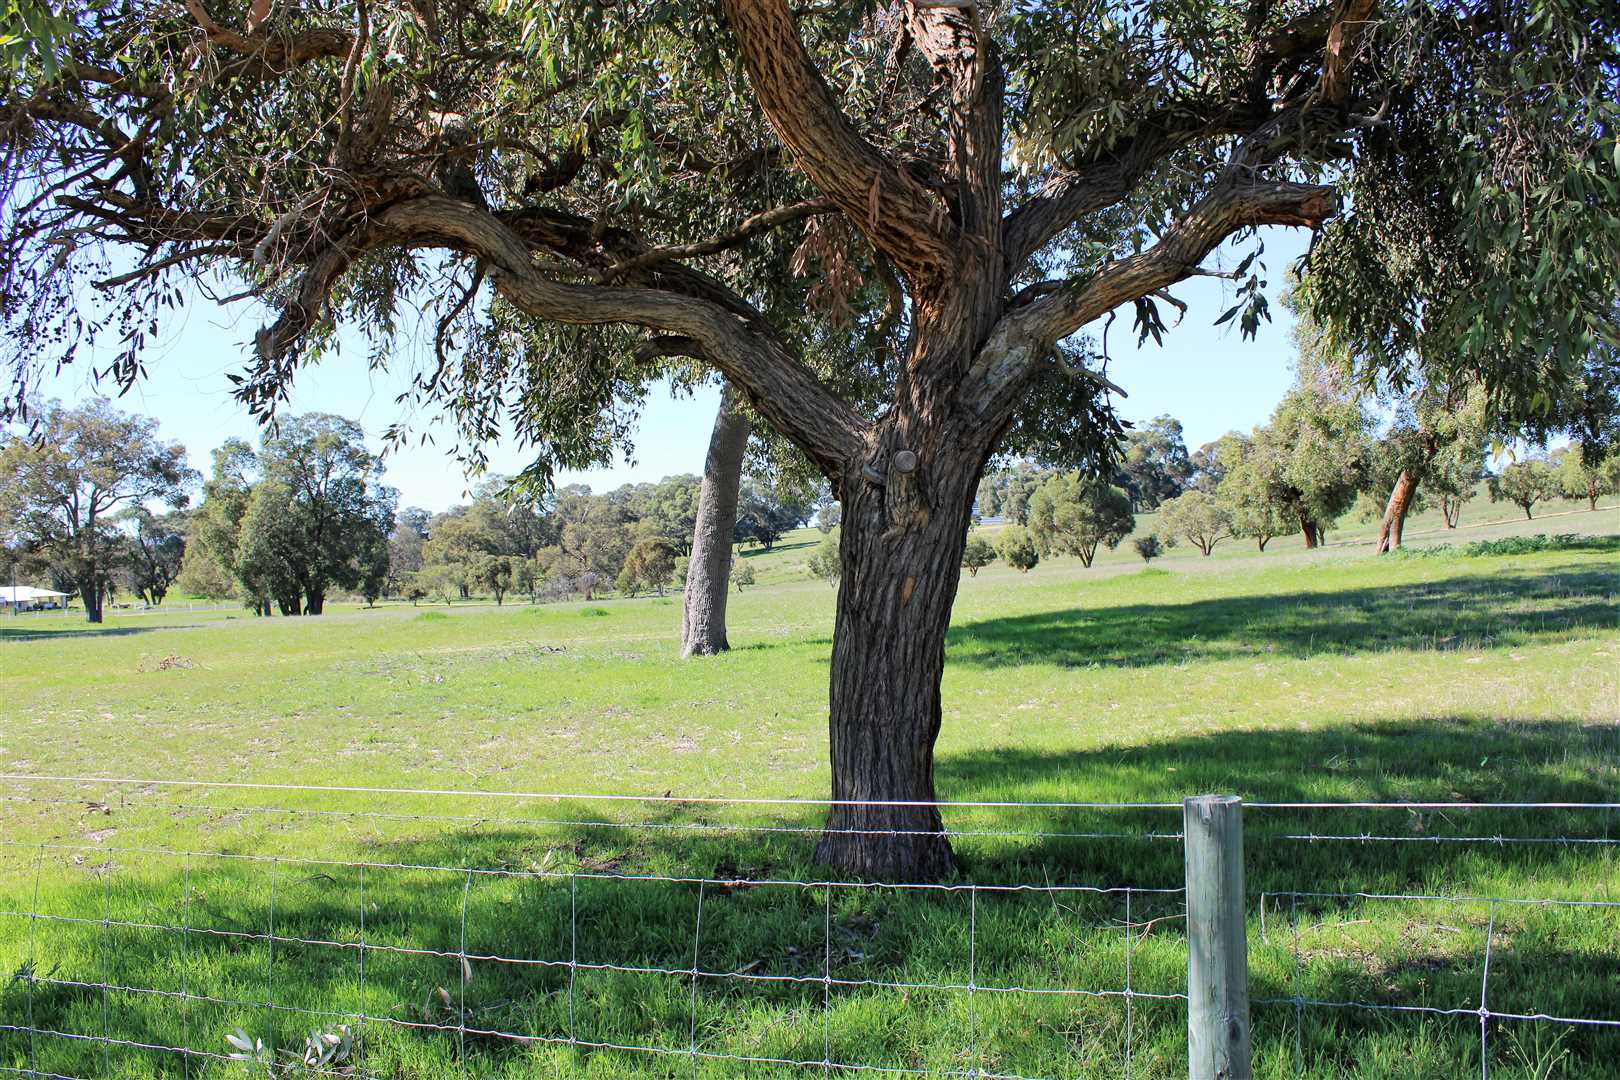 Pasture as far as the eye can see. Beautiful shady trees as Shelter for stock.